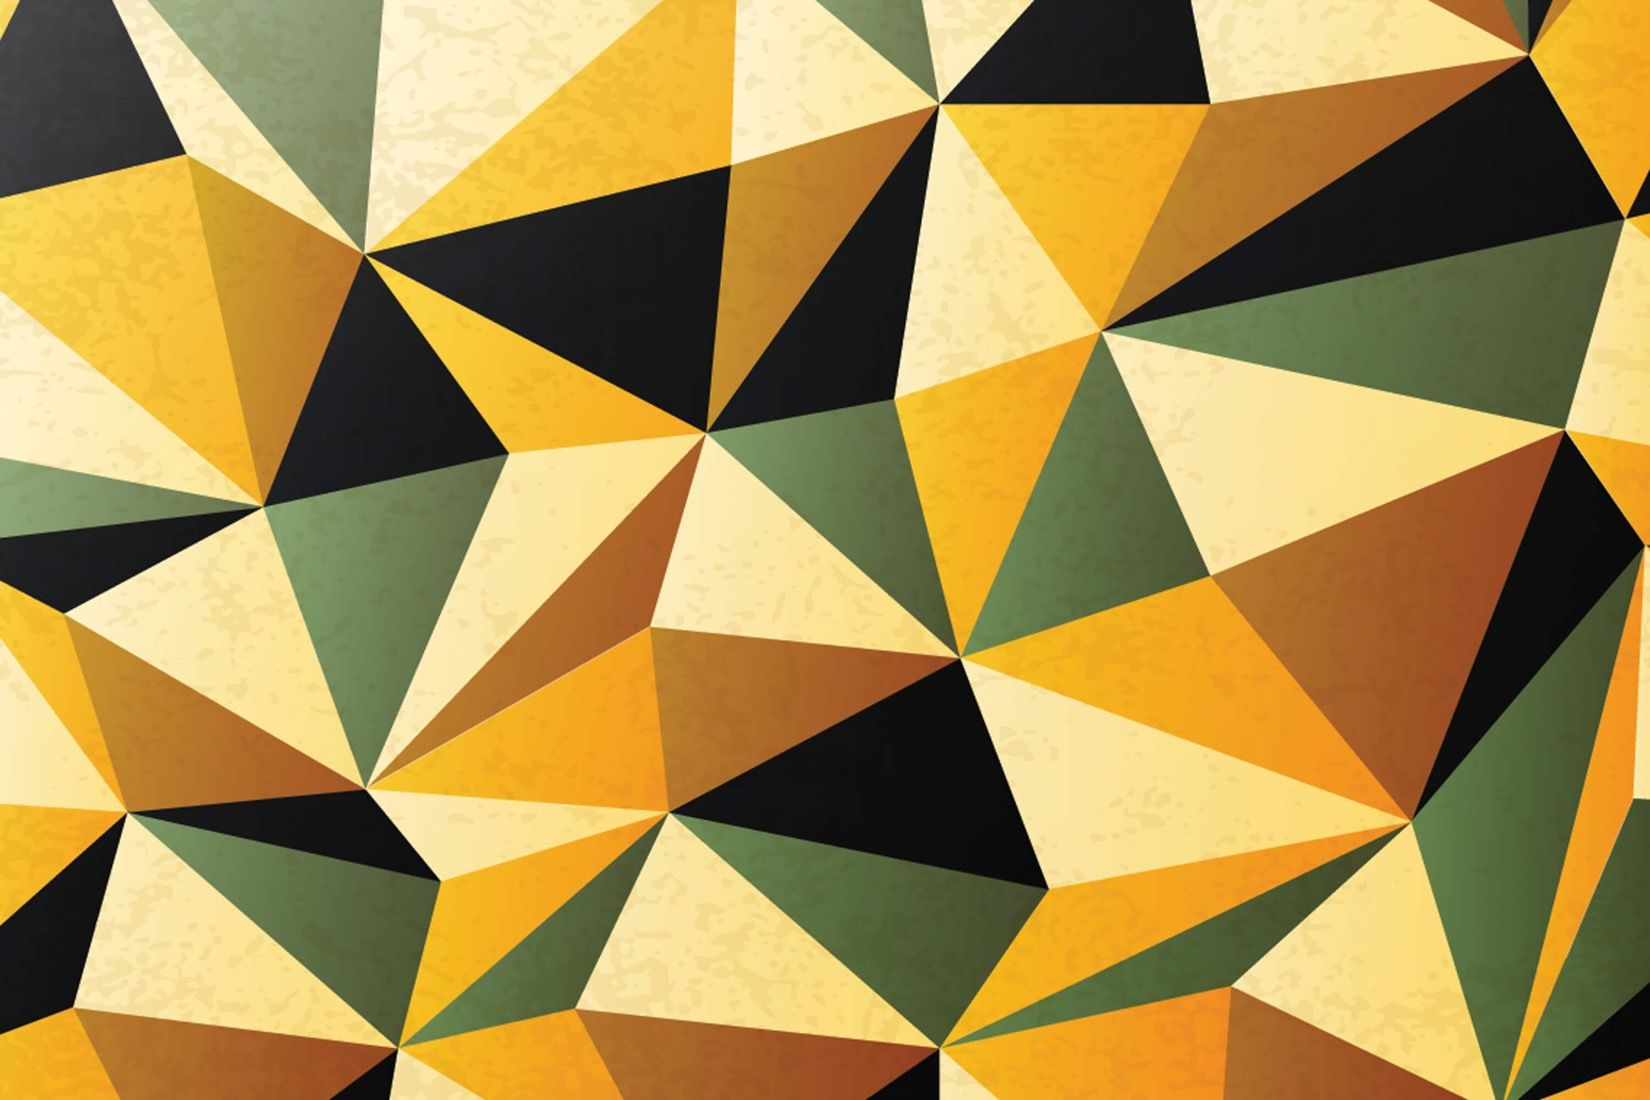 Yellow and Green Pattern Wall Mural | Design services, Wall murals ...